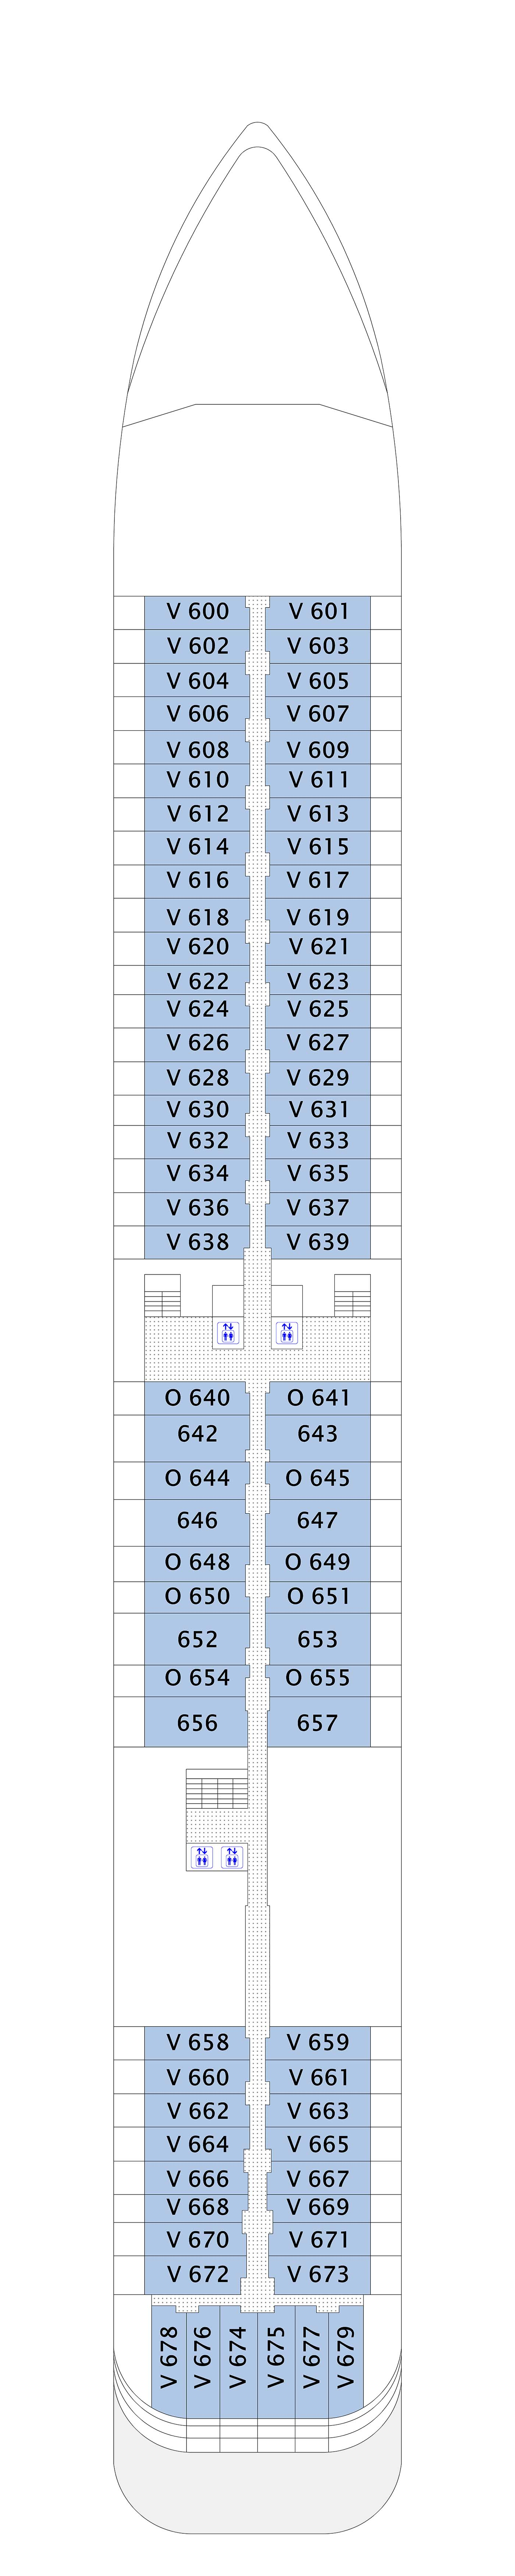 MS Europa 2 deck plan 6